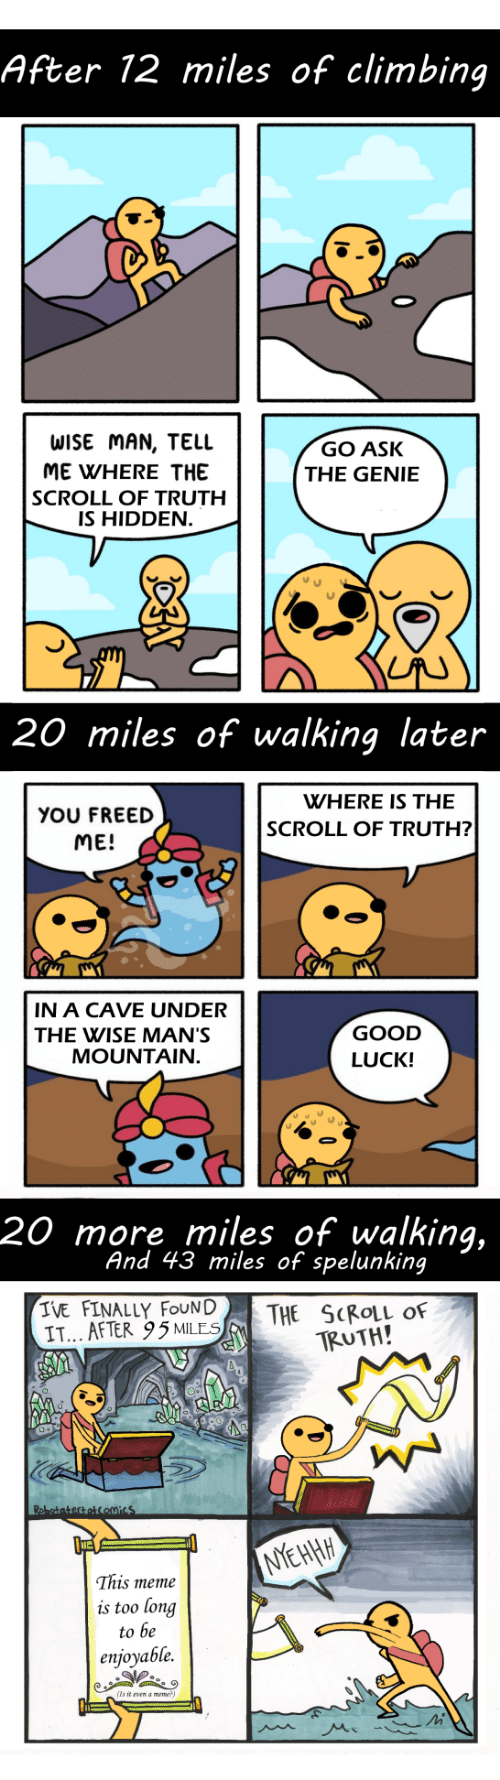 Wise Man: After 12 miles of climbing  WISE MAN, TELL  ME WHERE THE  SCROLL OF TRUTH  IS HIDDEN  GO ASK  THE GENIE  20 miles of walking later  WHERE IS THE  YOU FREED  ME!  SCROLL OF TRUTH?  IN A CAVE UNDER  THE WISE MAN'S  GOOD  LUCK!  MOUNTAIN  20 more miles of walking,  And 43 miles of spelunking  IVE FINALLY FOUN|  IT... AFTER 95MLES  THE SCROLL OF  TRUTH!  This meme  is too long  to be  enjoyable.  (Ts it vn a meme